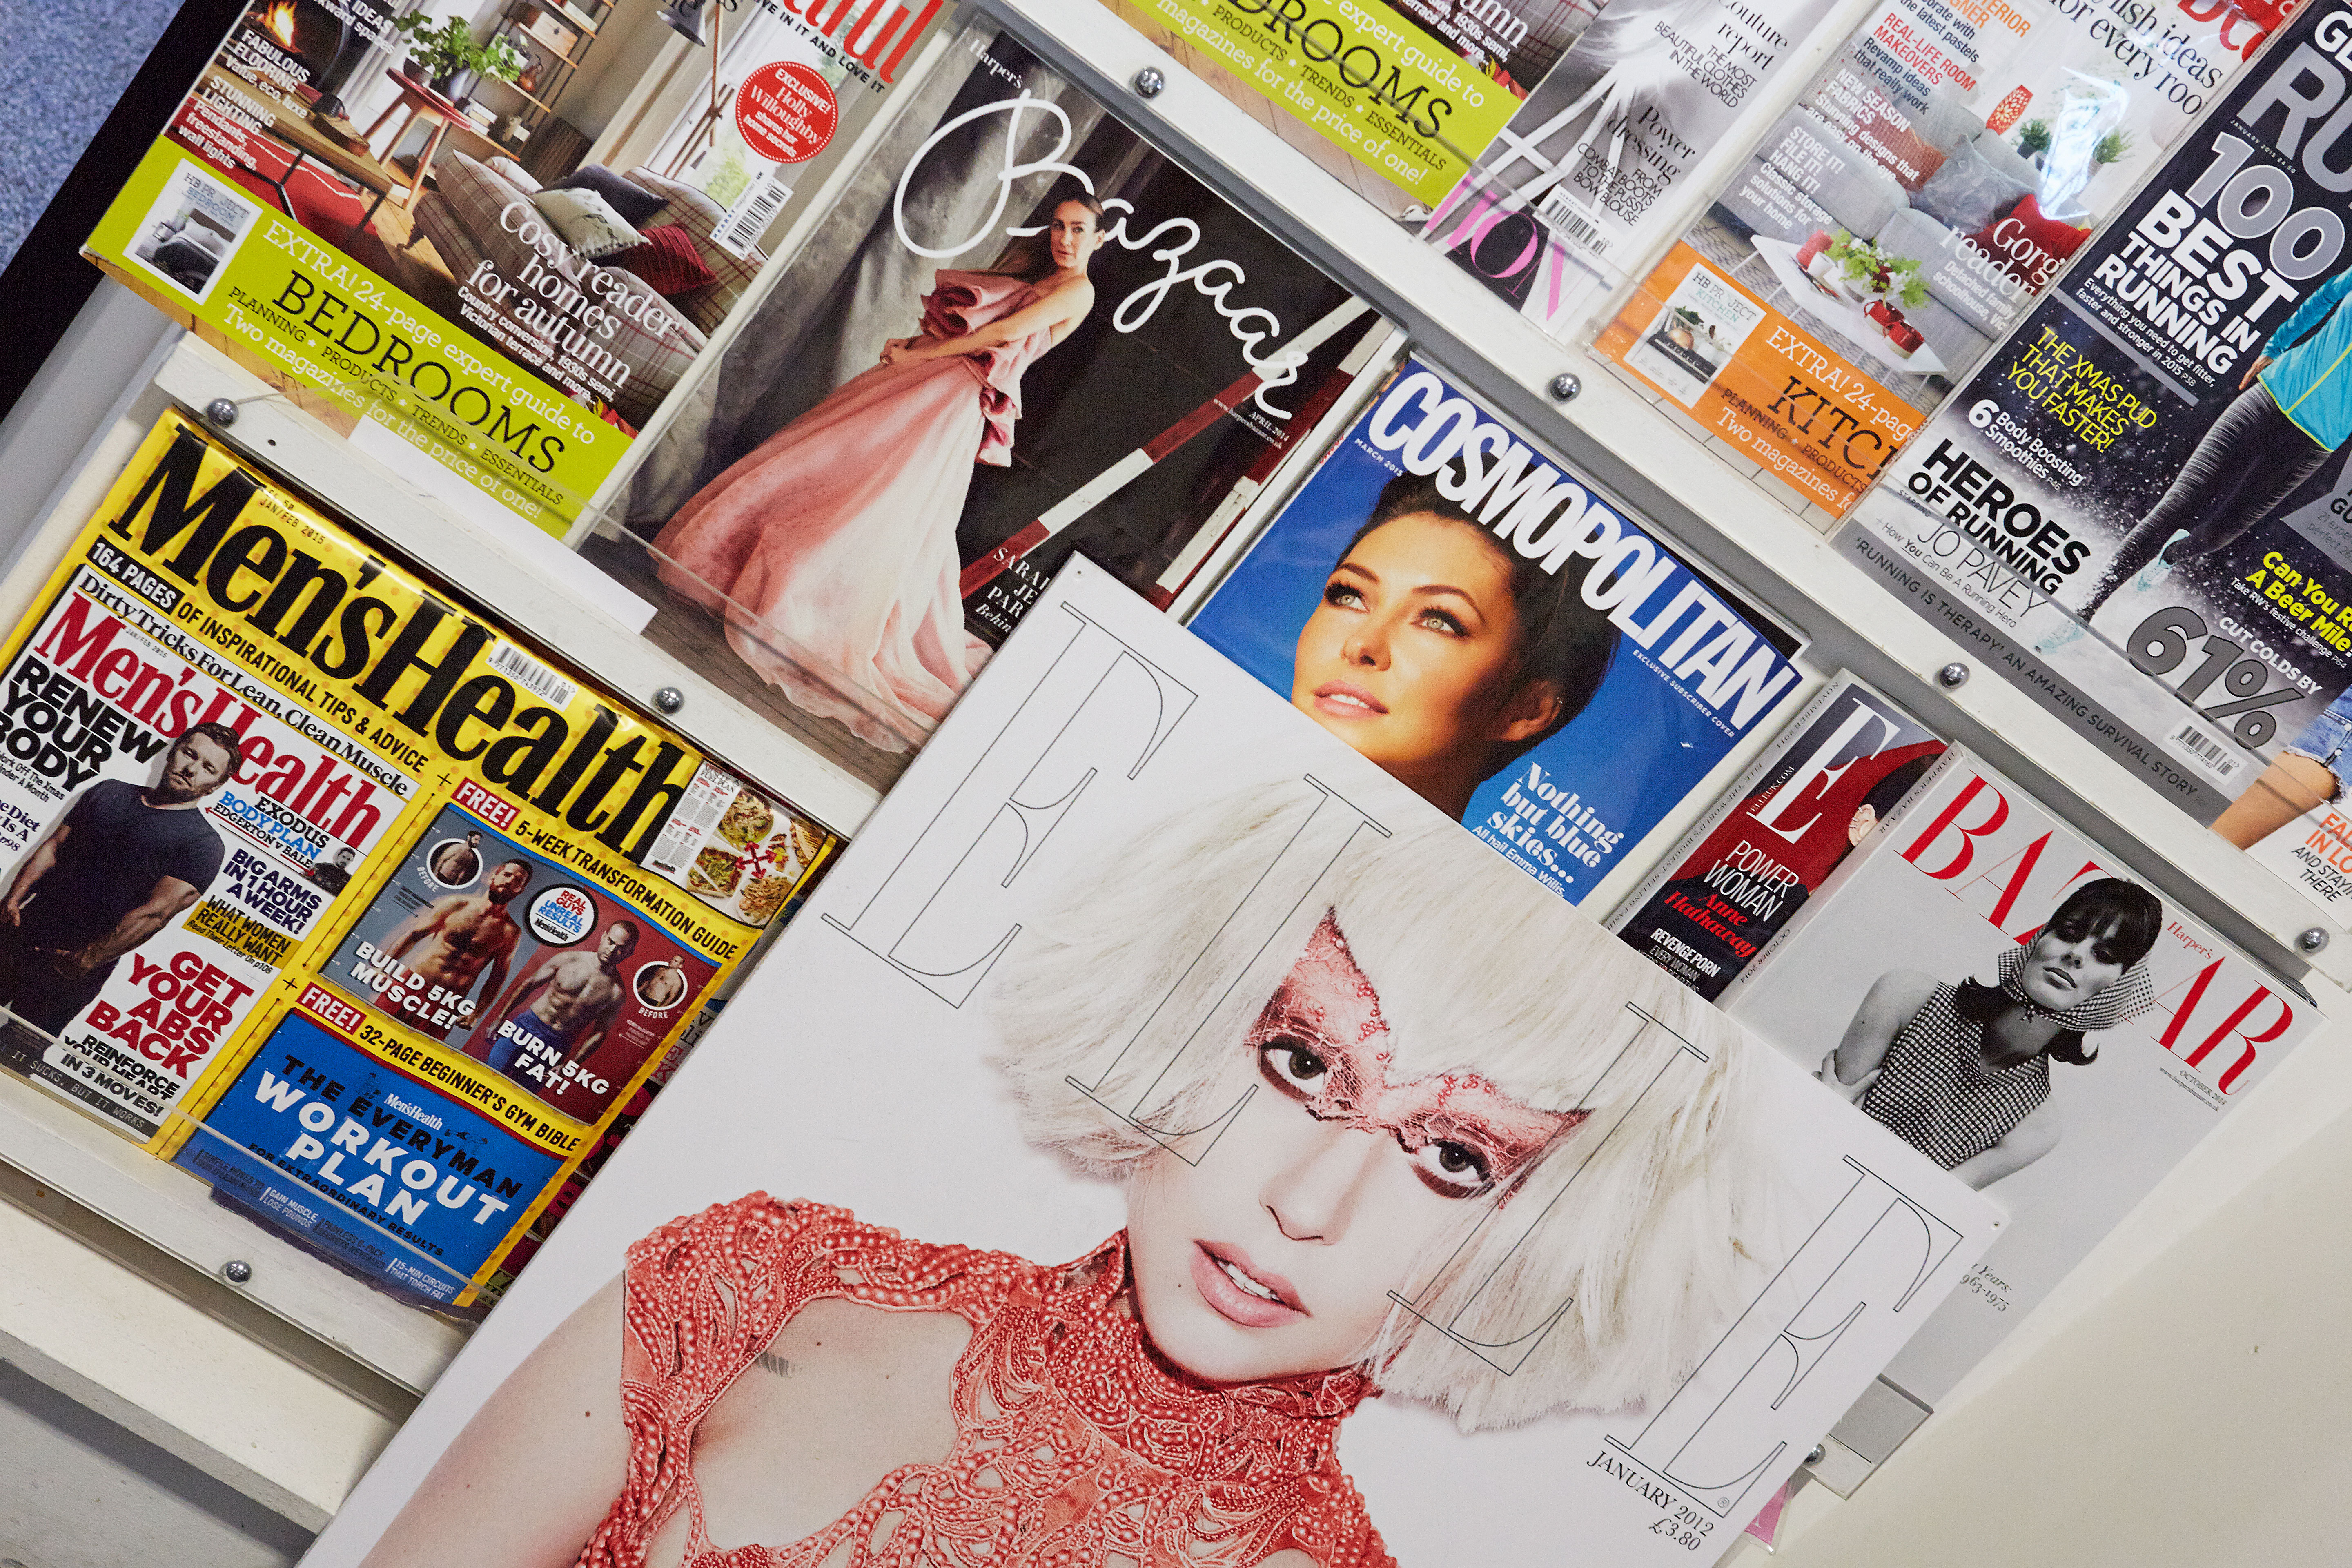 Continued growth in women s brands as hearst magazines uk announces latest abc figures hearst ukhearst uk